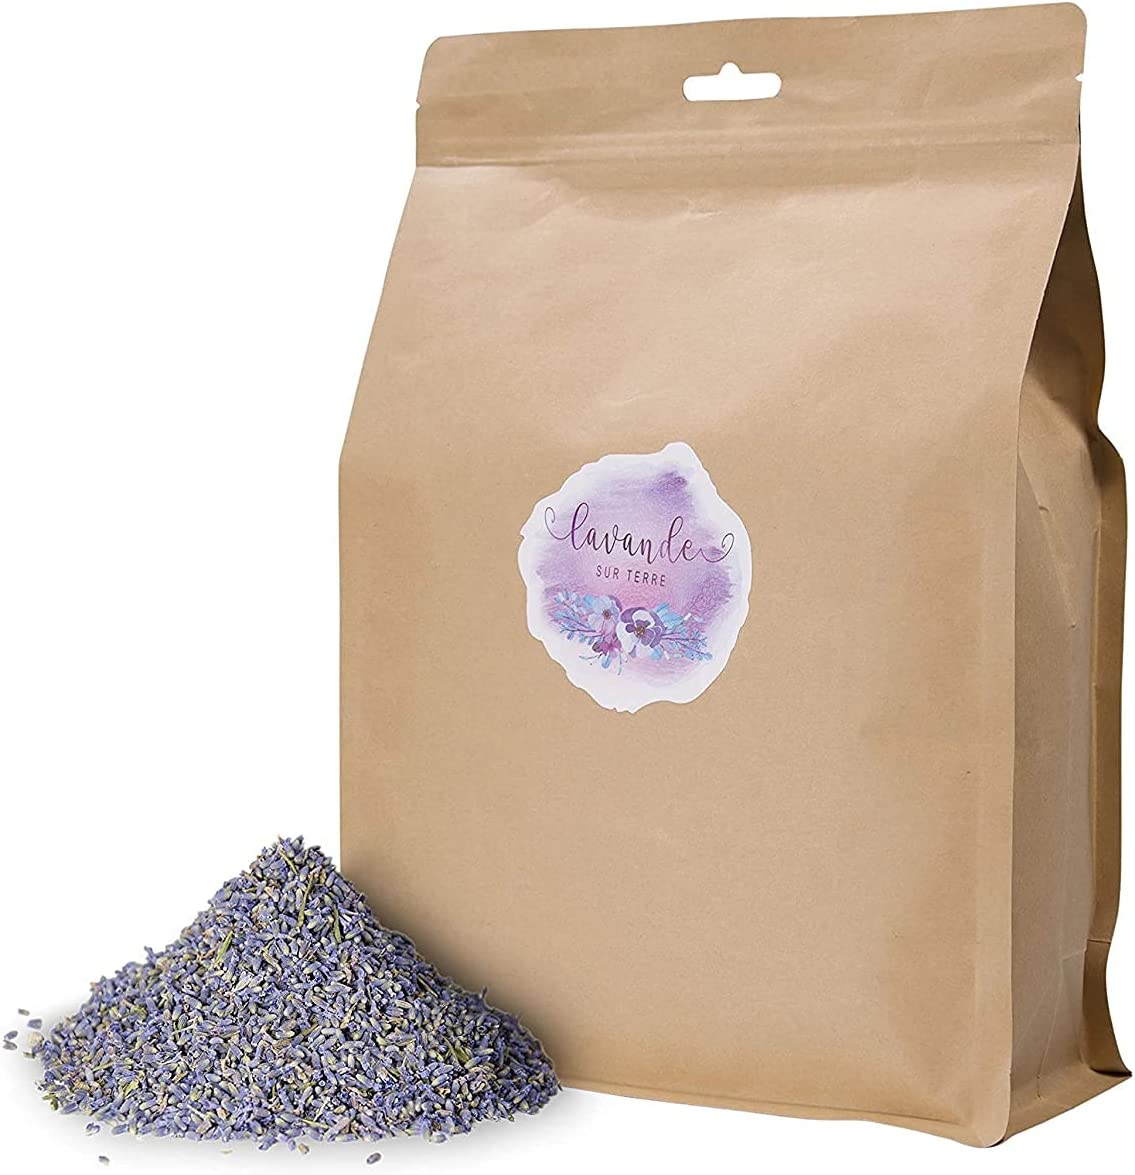 Dried Lavender Flower Max 68% OFF Buds 64 Bag LV-O-N-5 lbs 4 New item Ounces